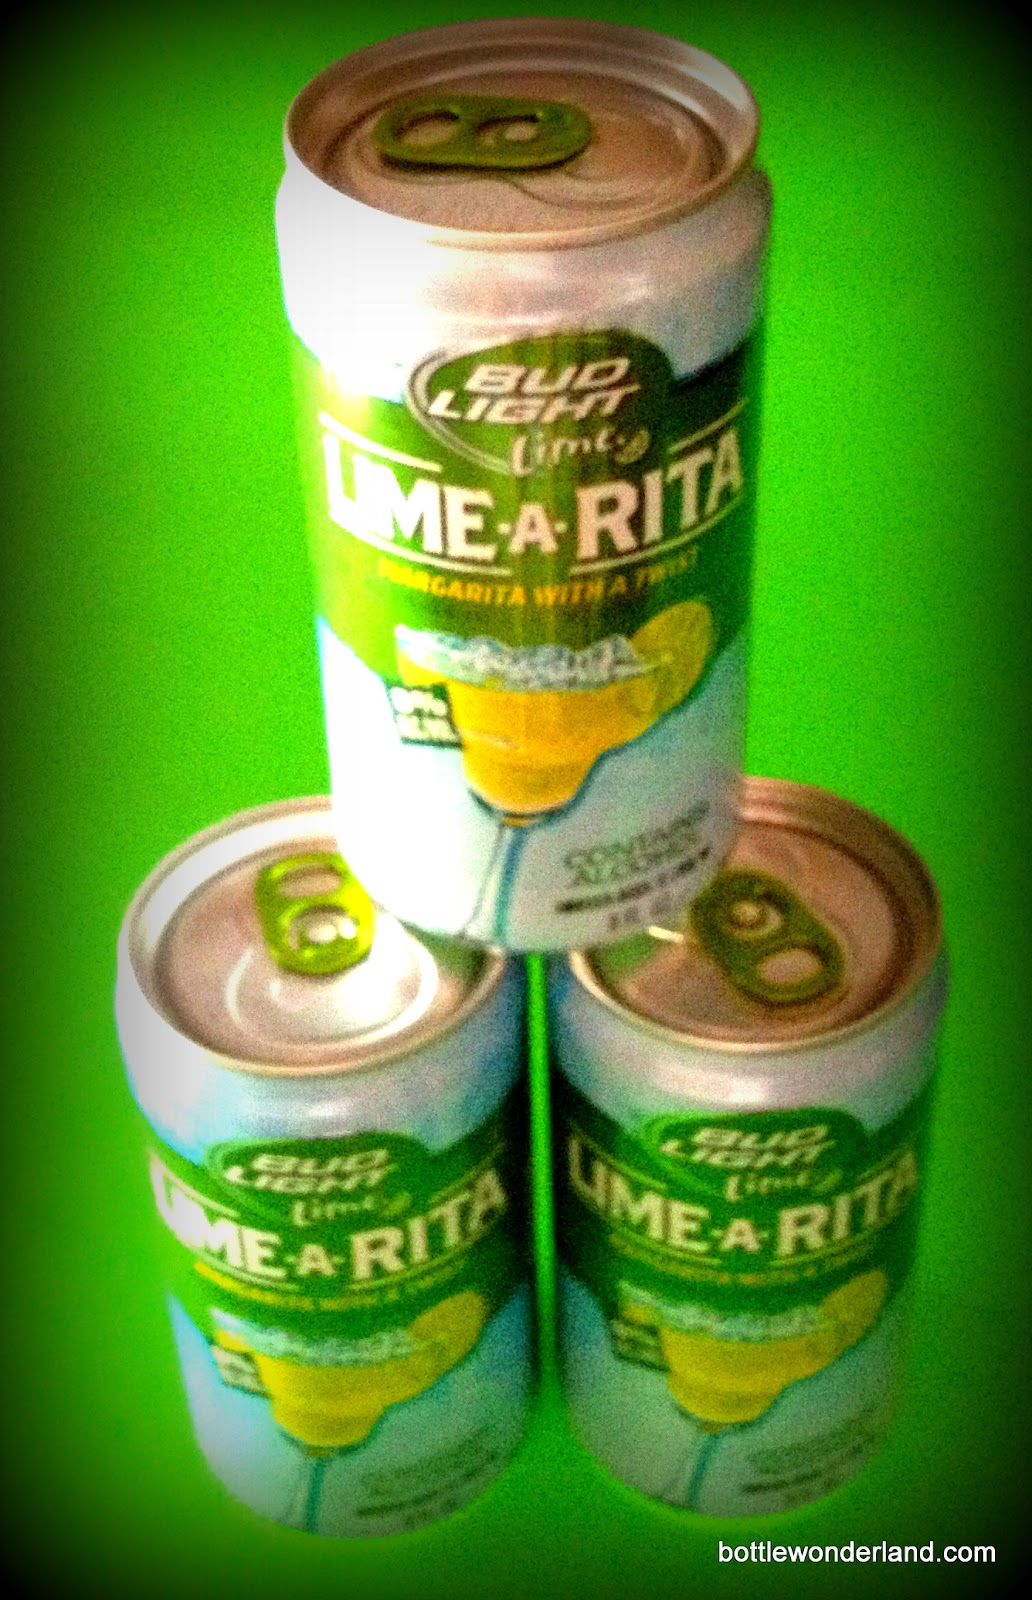 ... How Many Calories Does A Bud Light Lime Rita Have Www Lightneasy Net